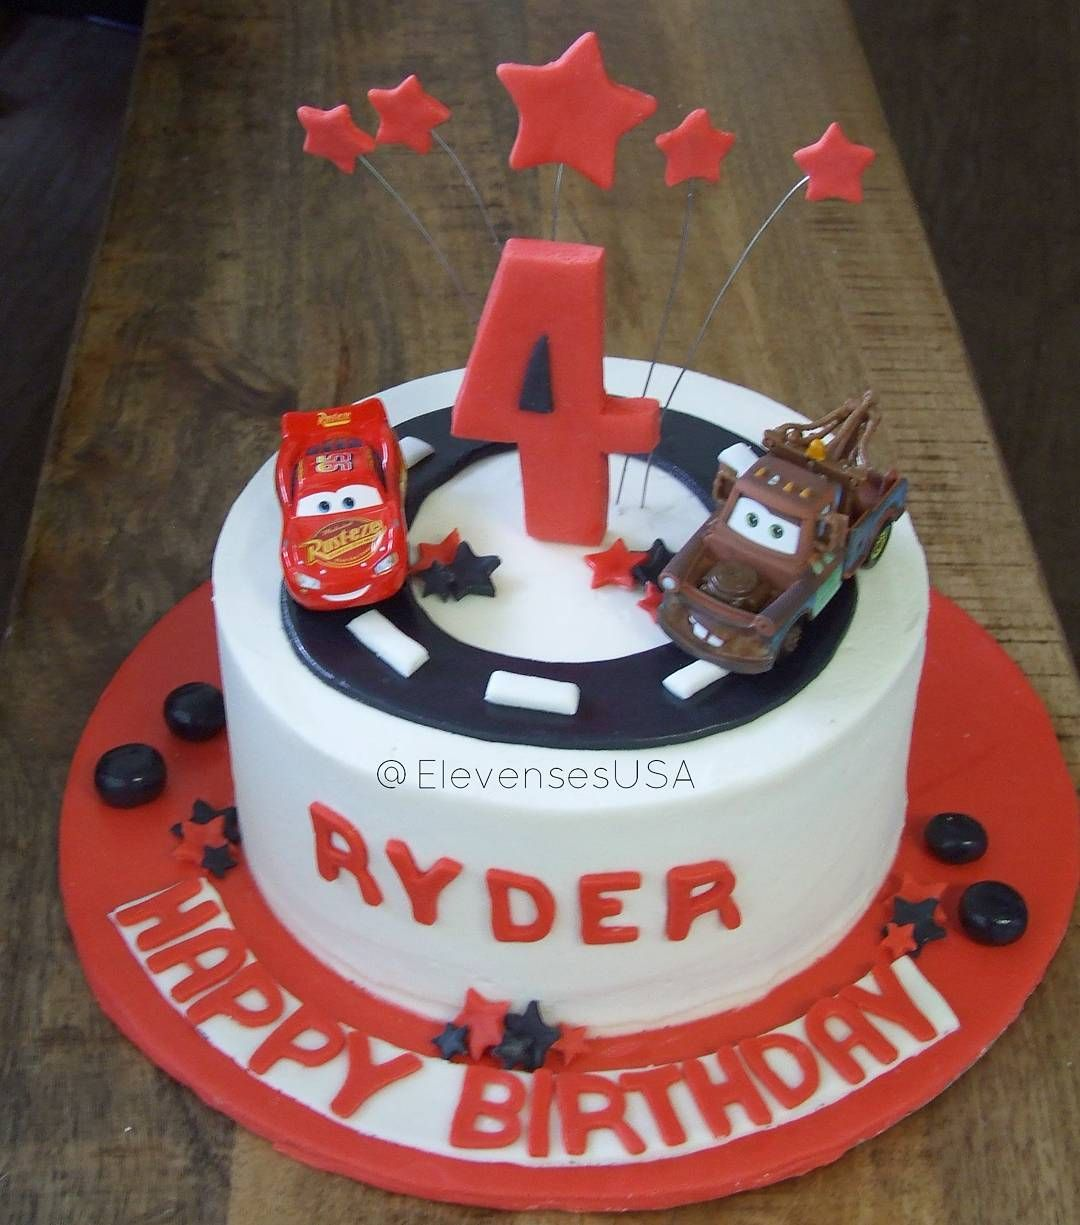 Magnificent Cars Birthday Cake Complete With Lightning Mcqueen And Mater Personalised Birthday Cards Paralily Jamesorg